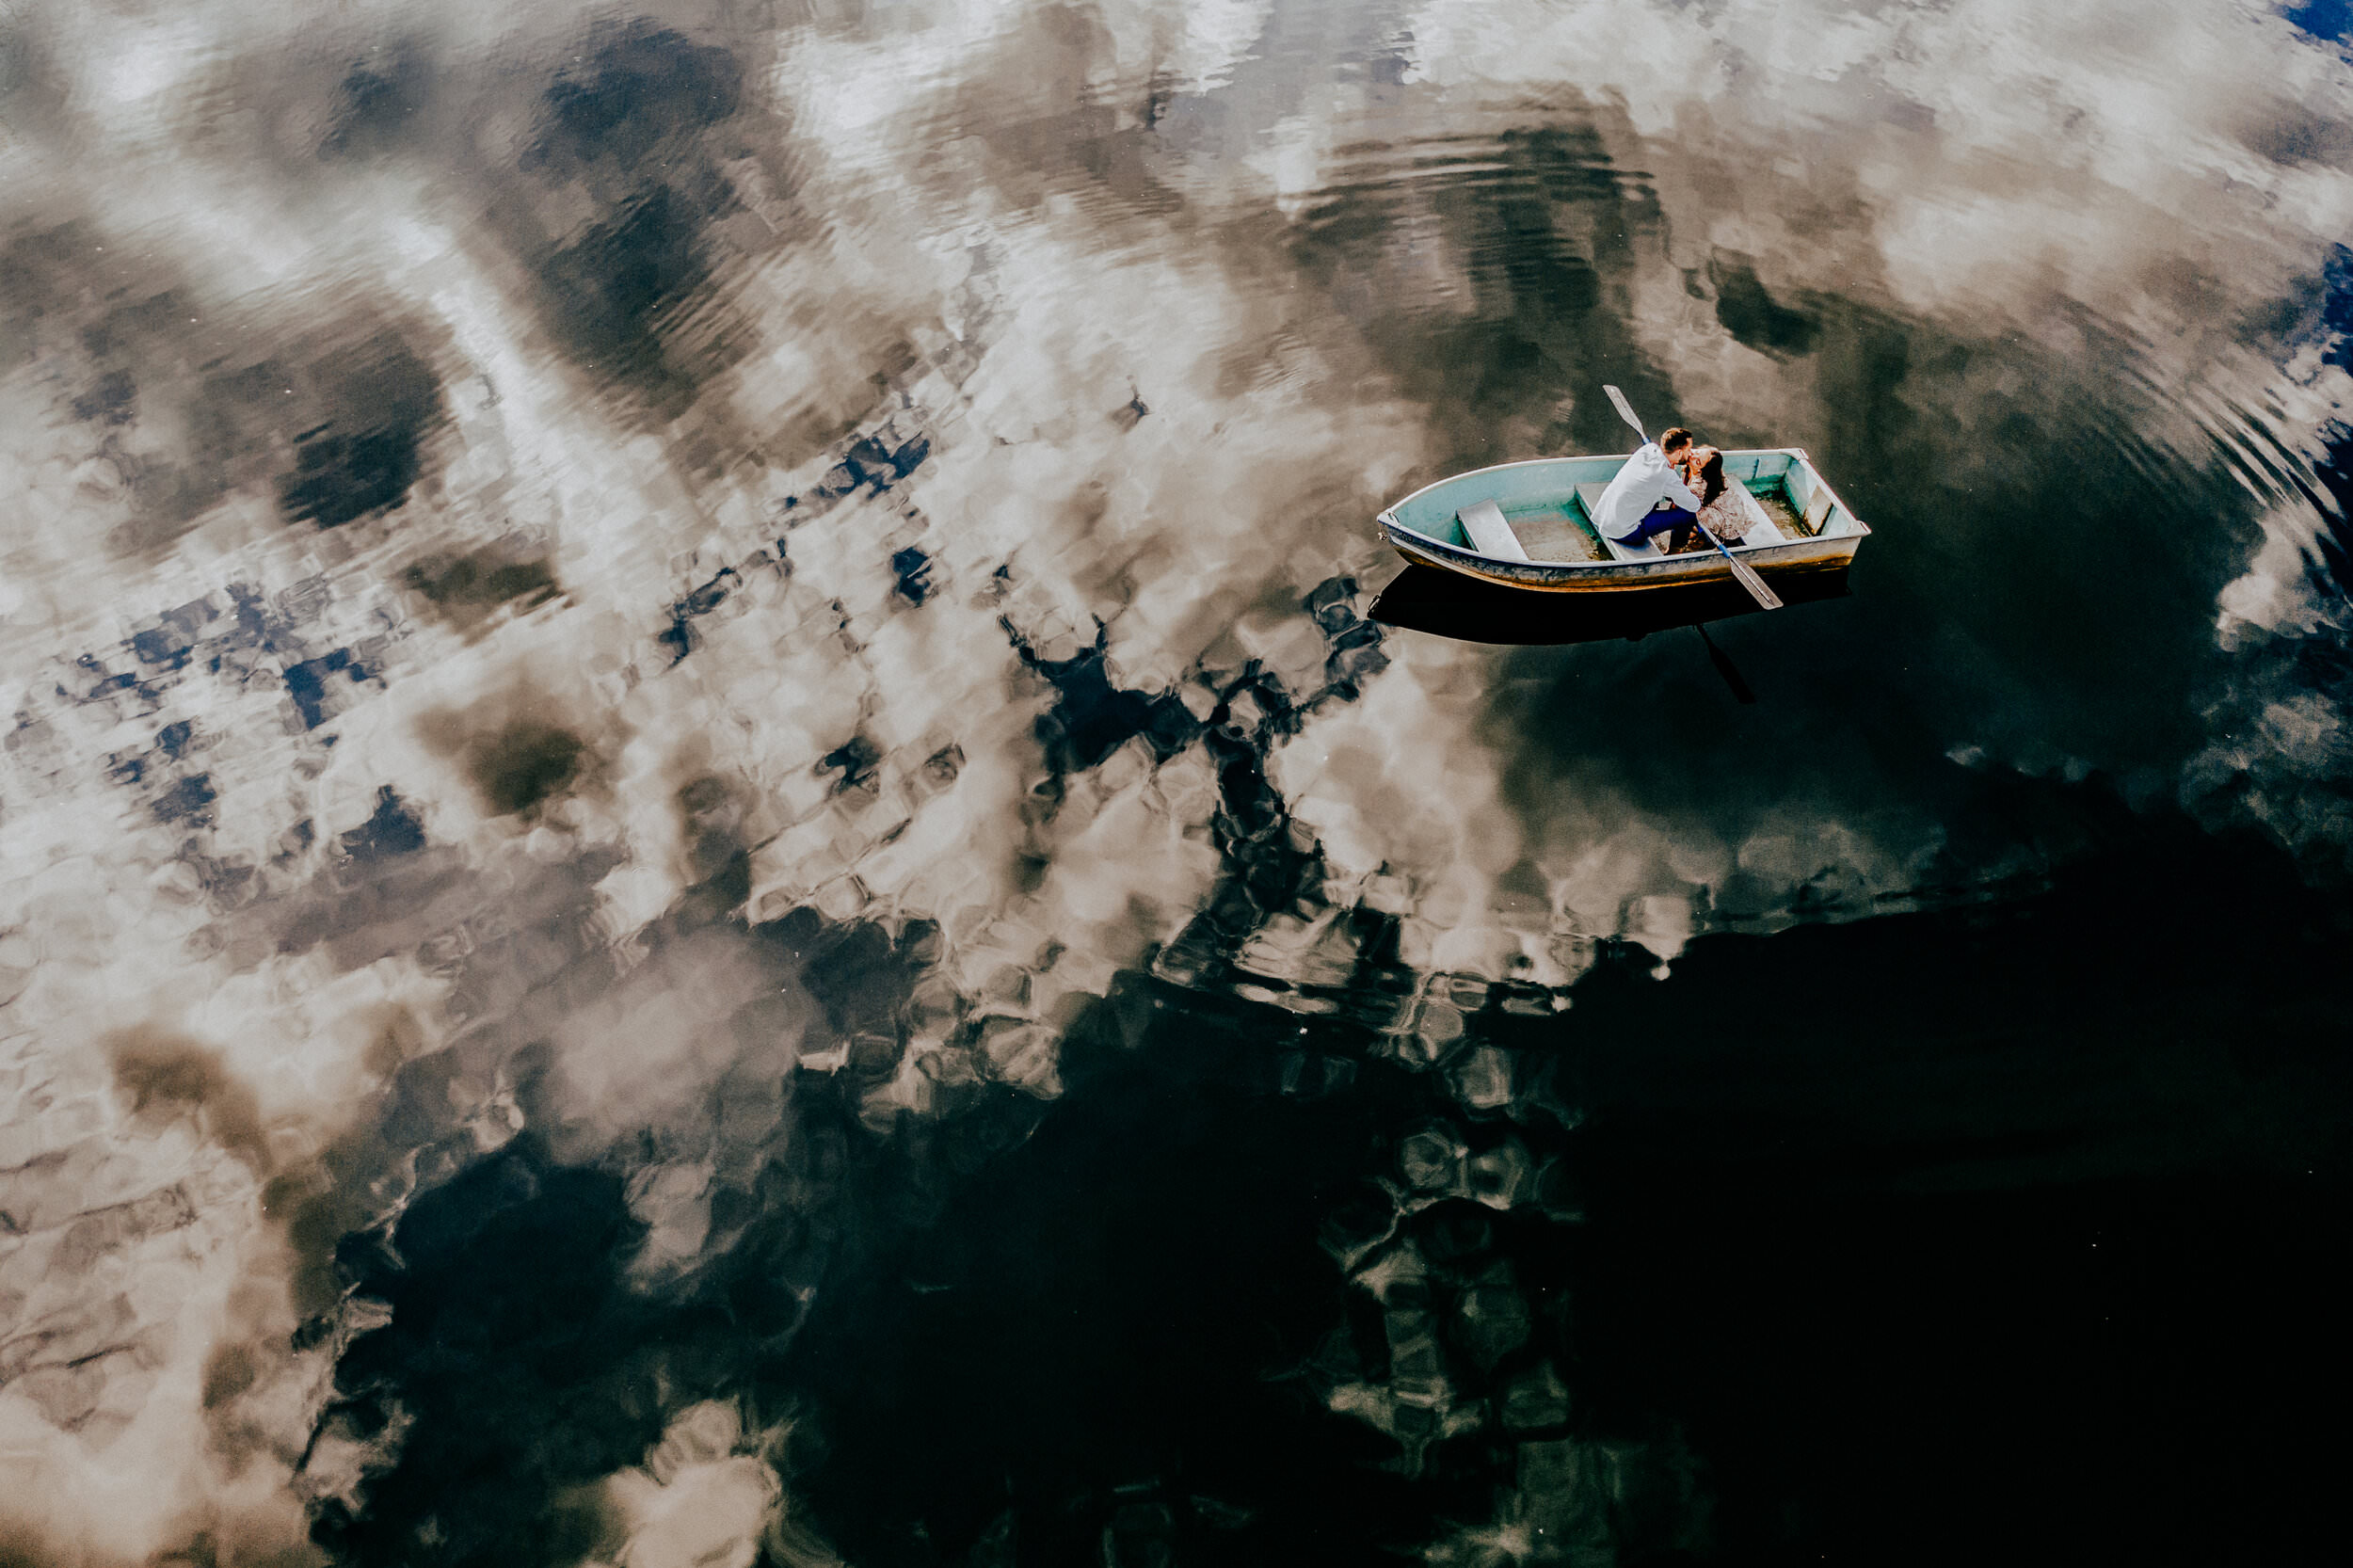 couple-in-rowboat-surrounded-by-cloud-reflection-esteban-gil-photography-north-carolina